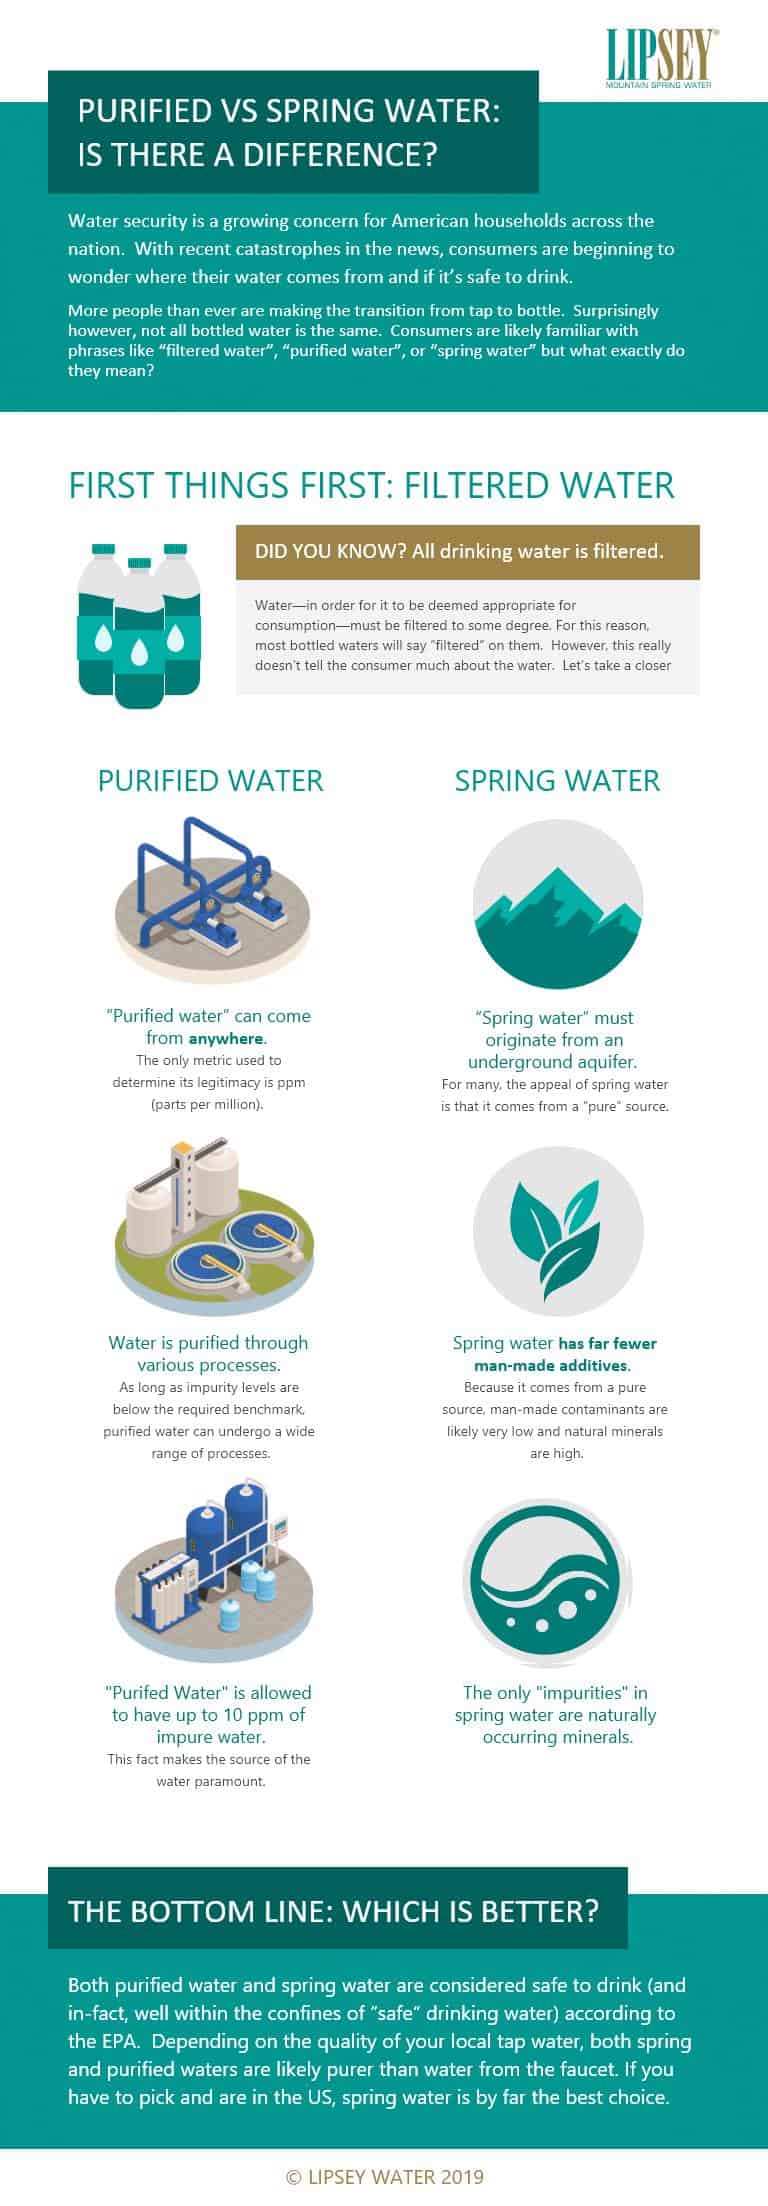 Spring Water vs. Purified Water - Which Is Better